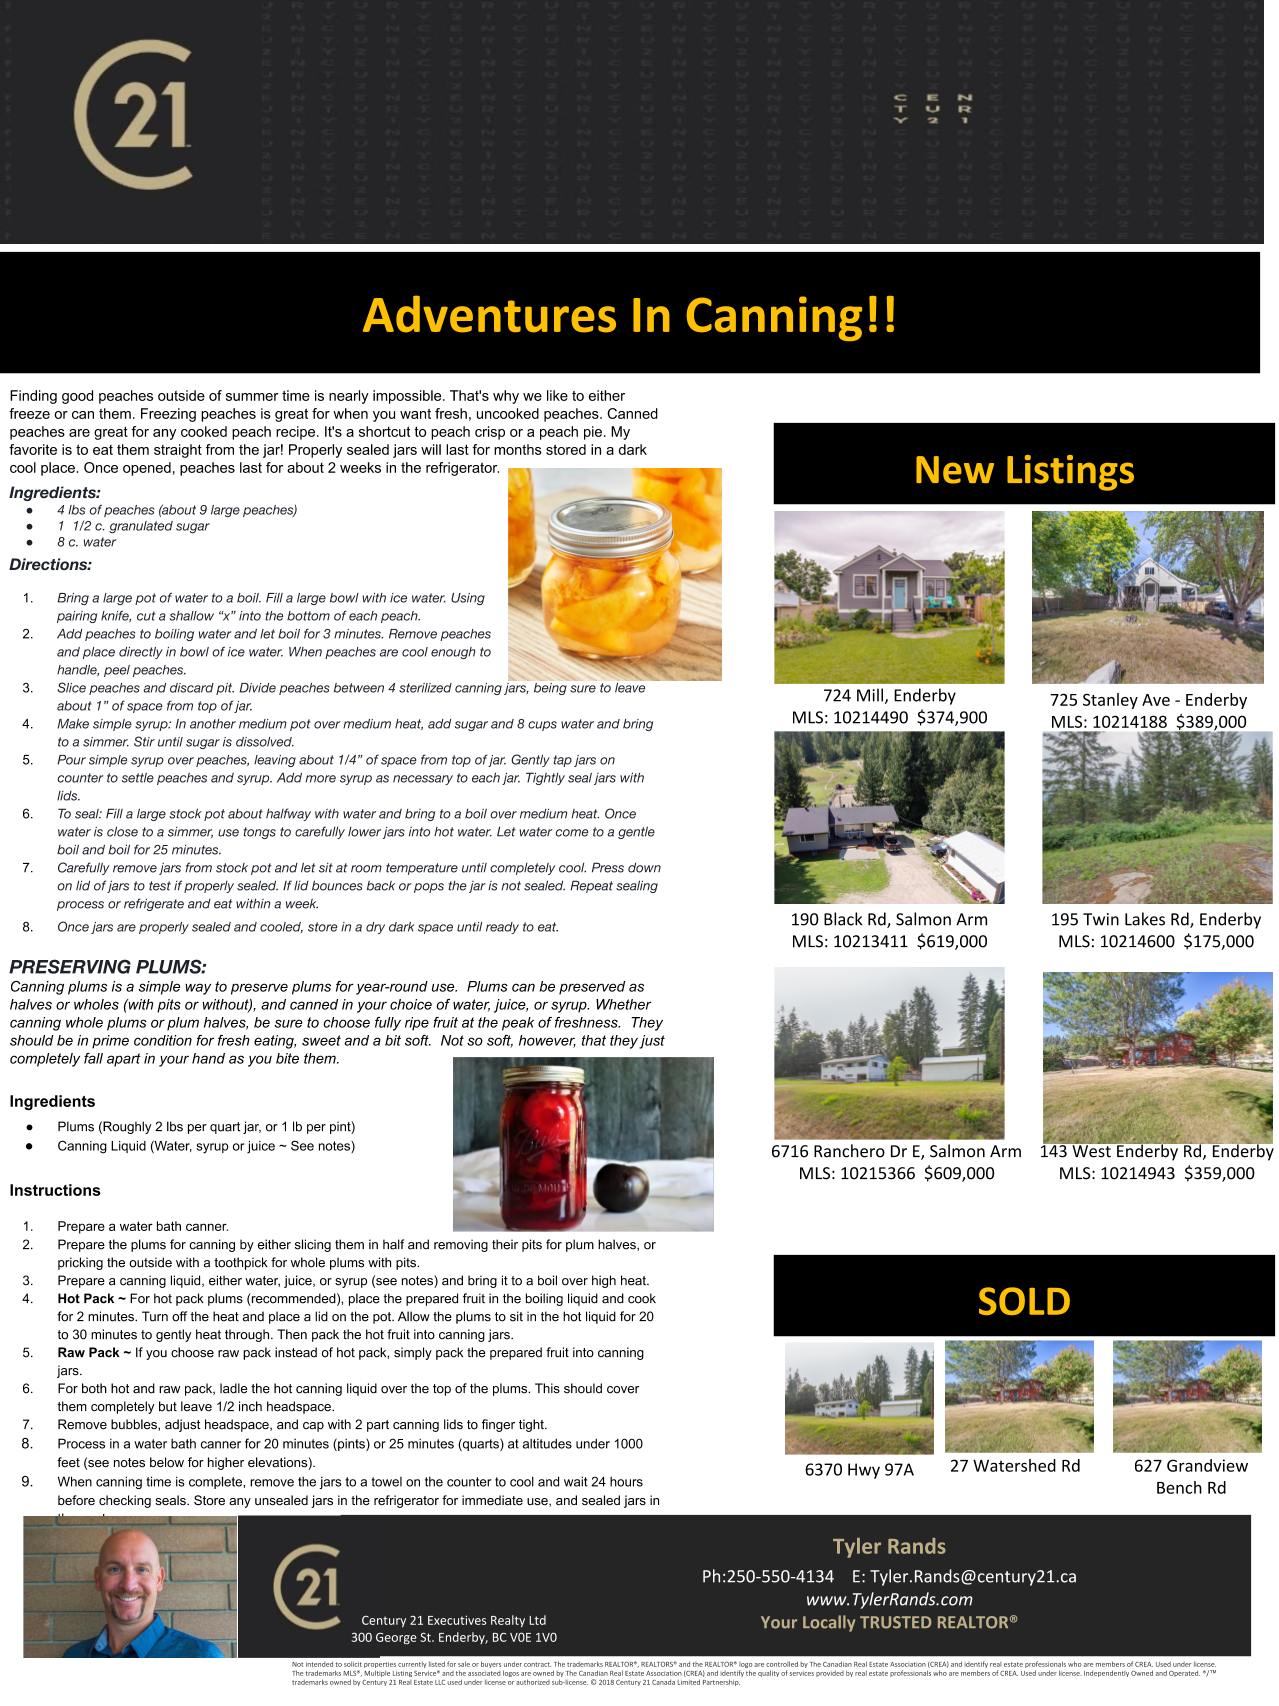 Newsletter about canning peaches and plums - Tyler Rands, September 2020